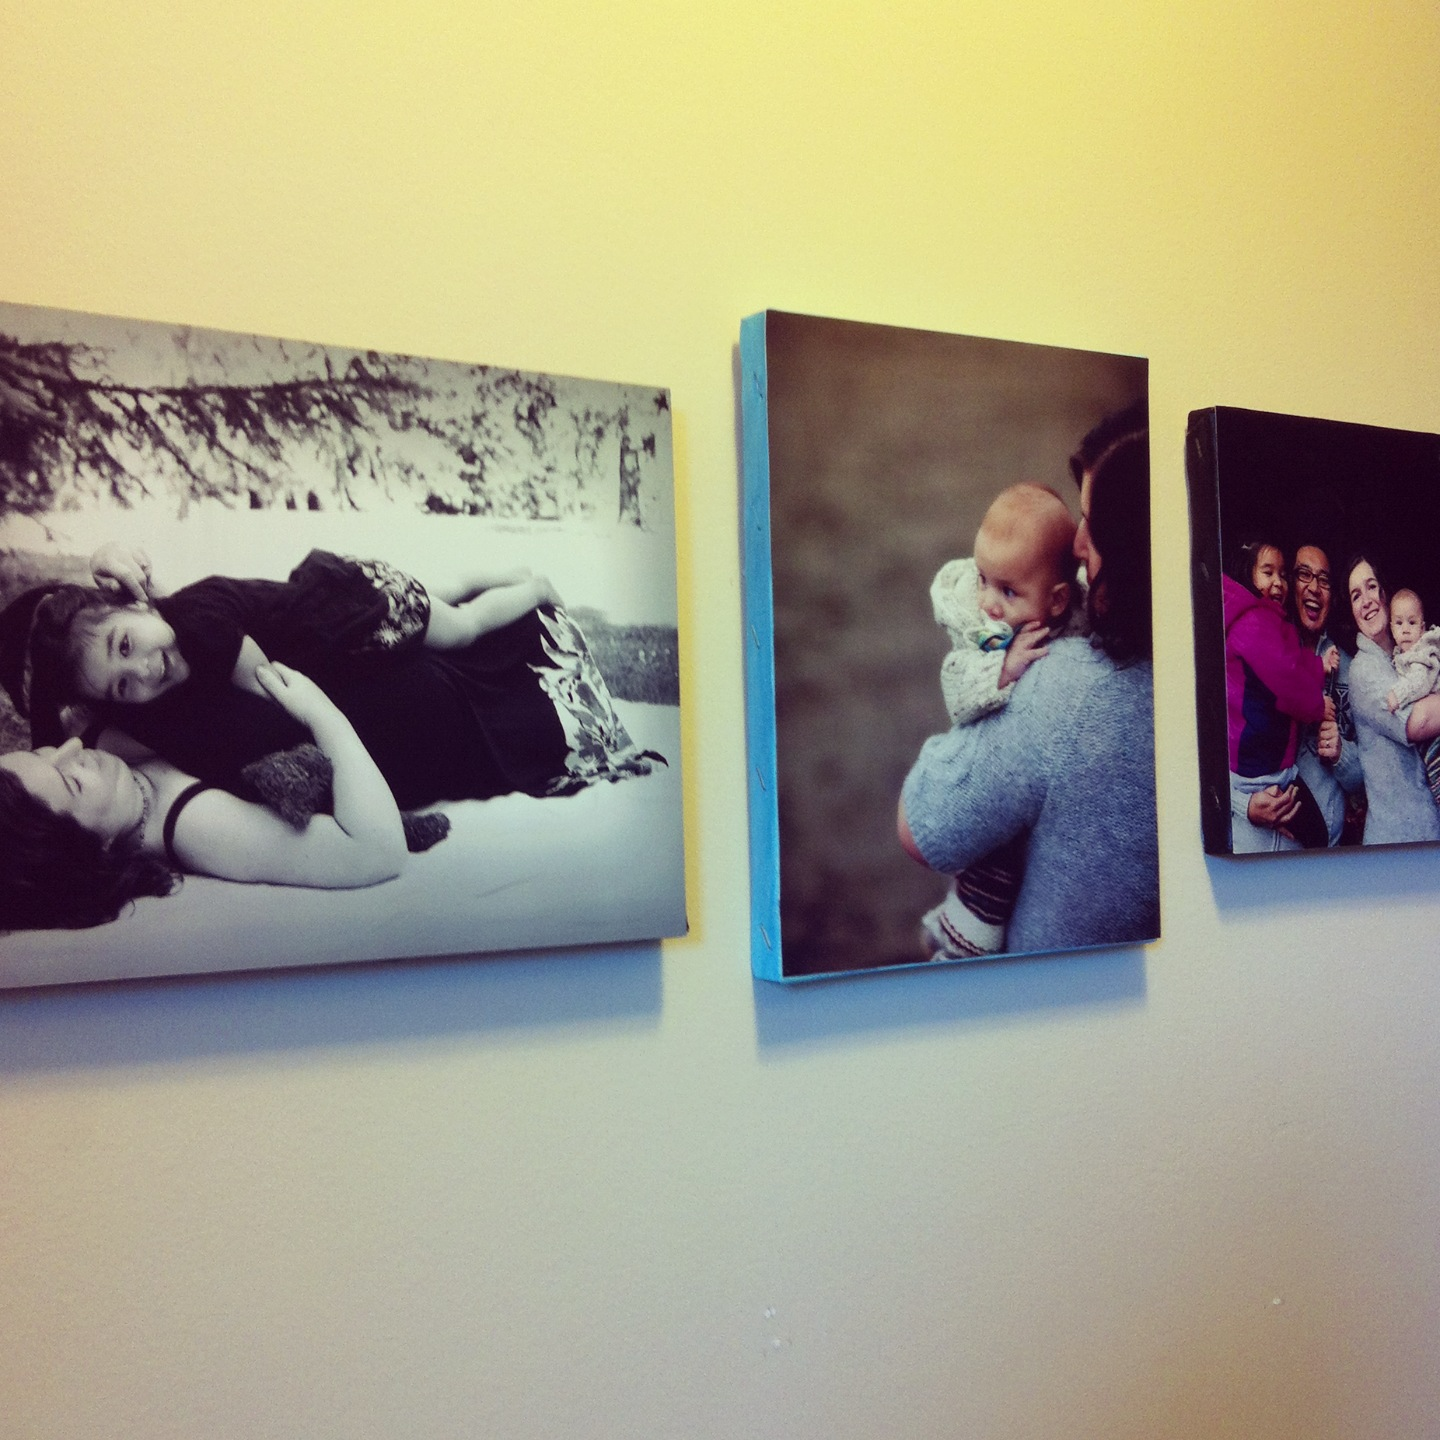 Mounting photo to canvas tutorial A great handmade gift for under $5.00 2